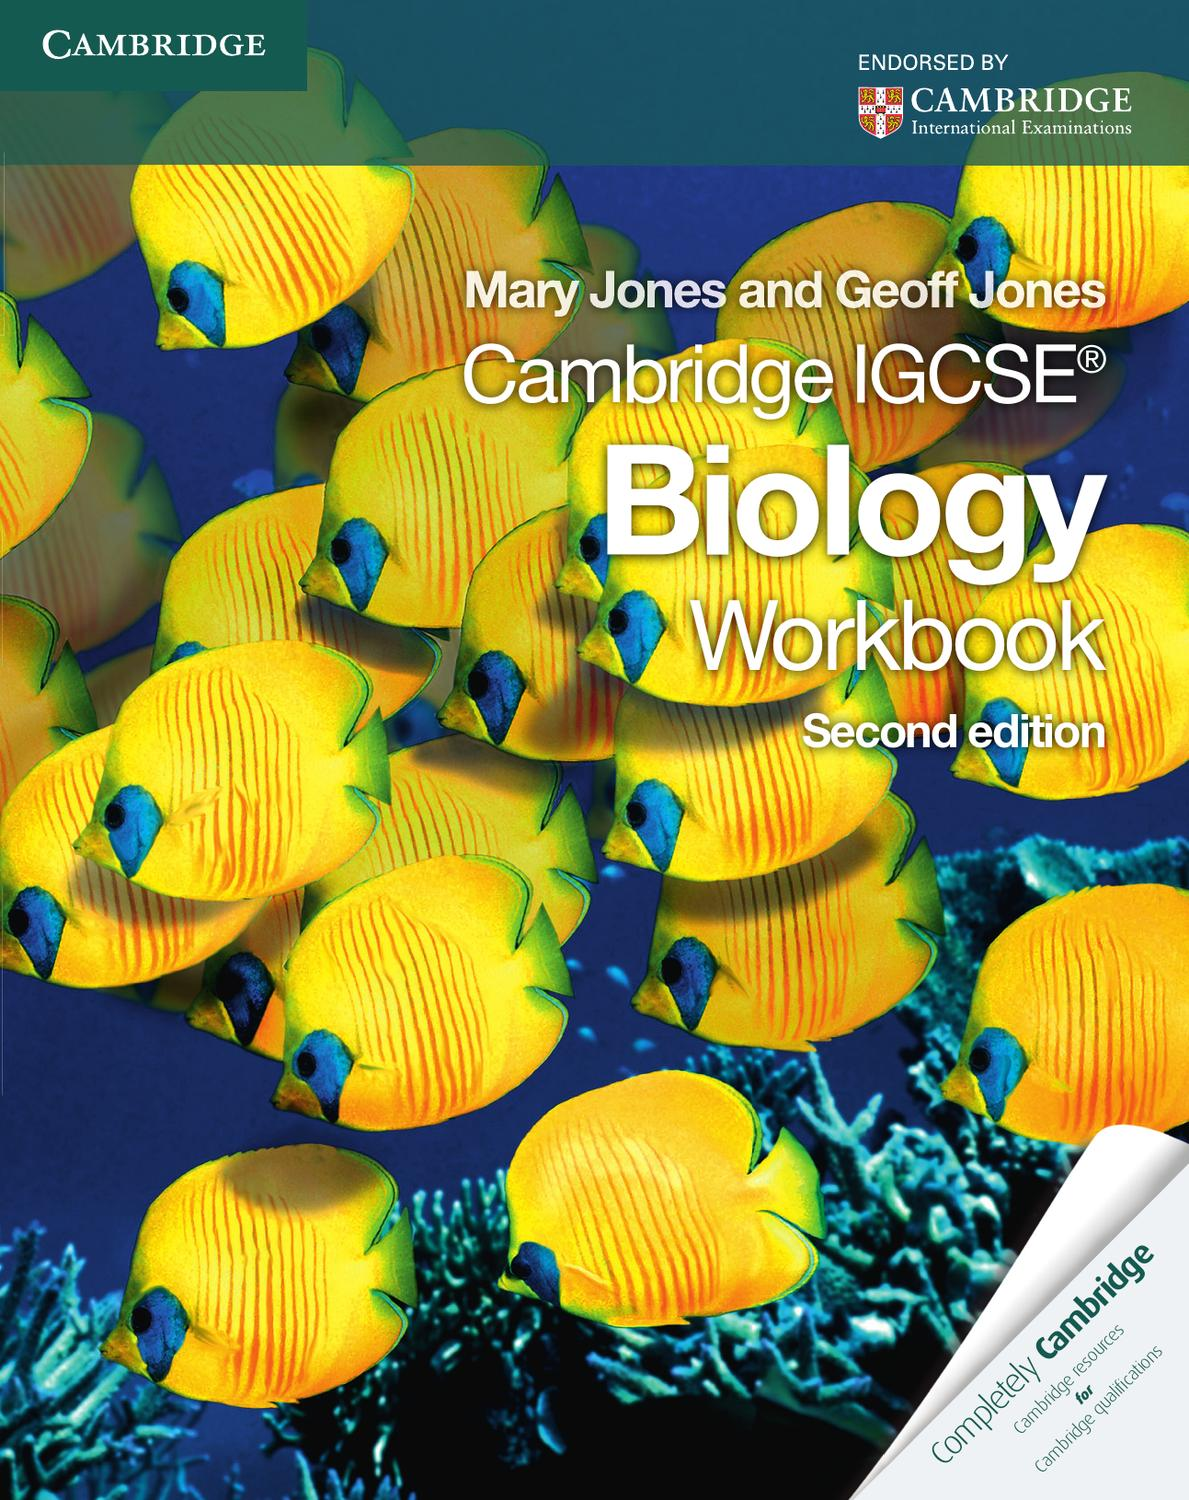 Cambridge igcse biology coursebook by mary jones (ebook).